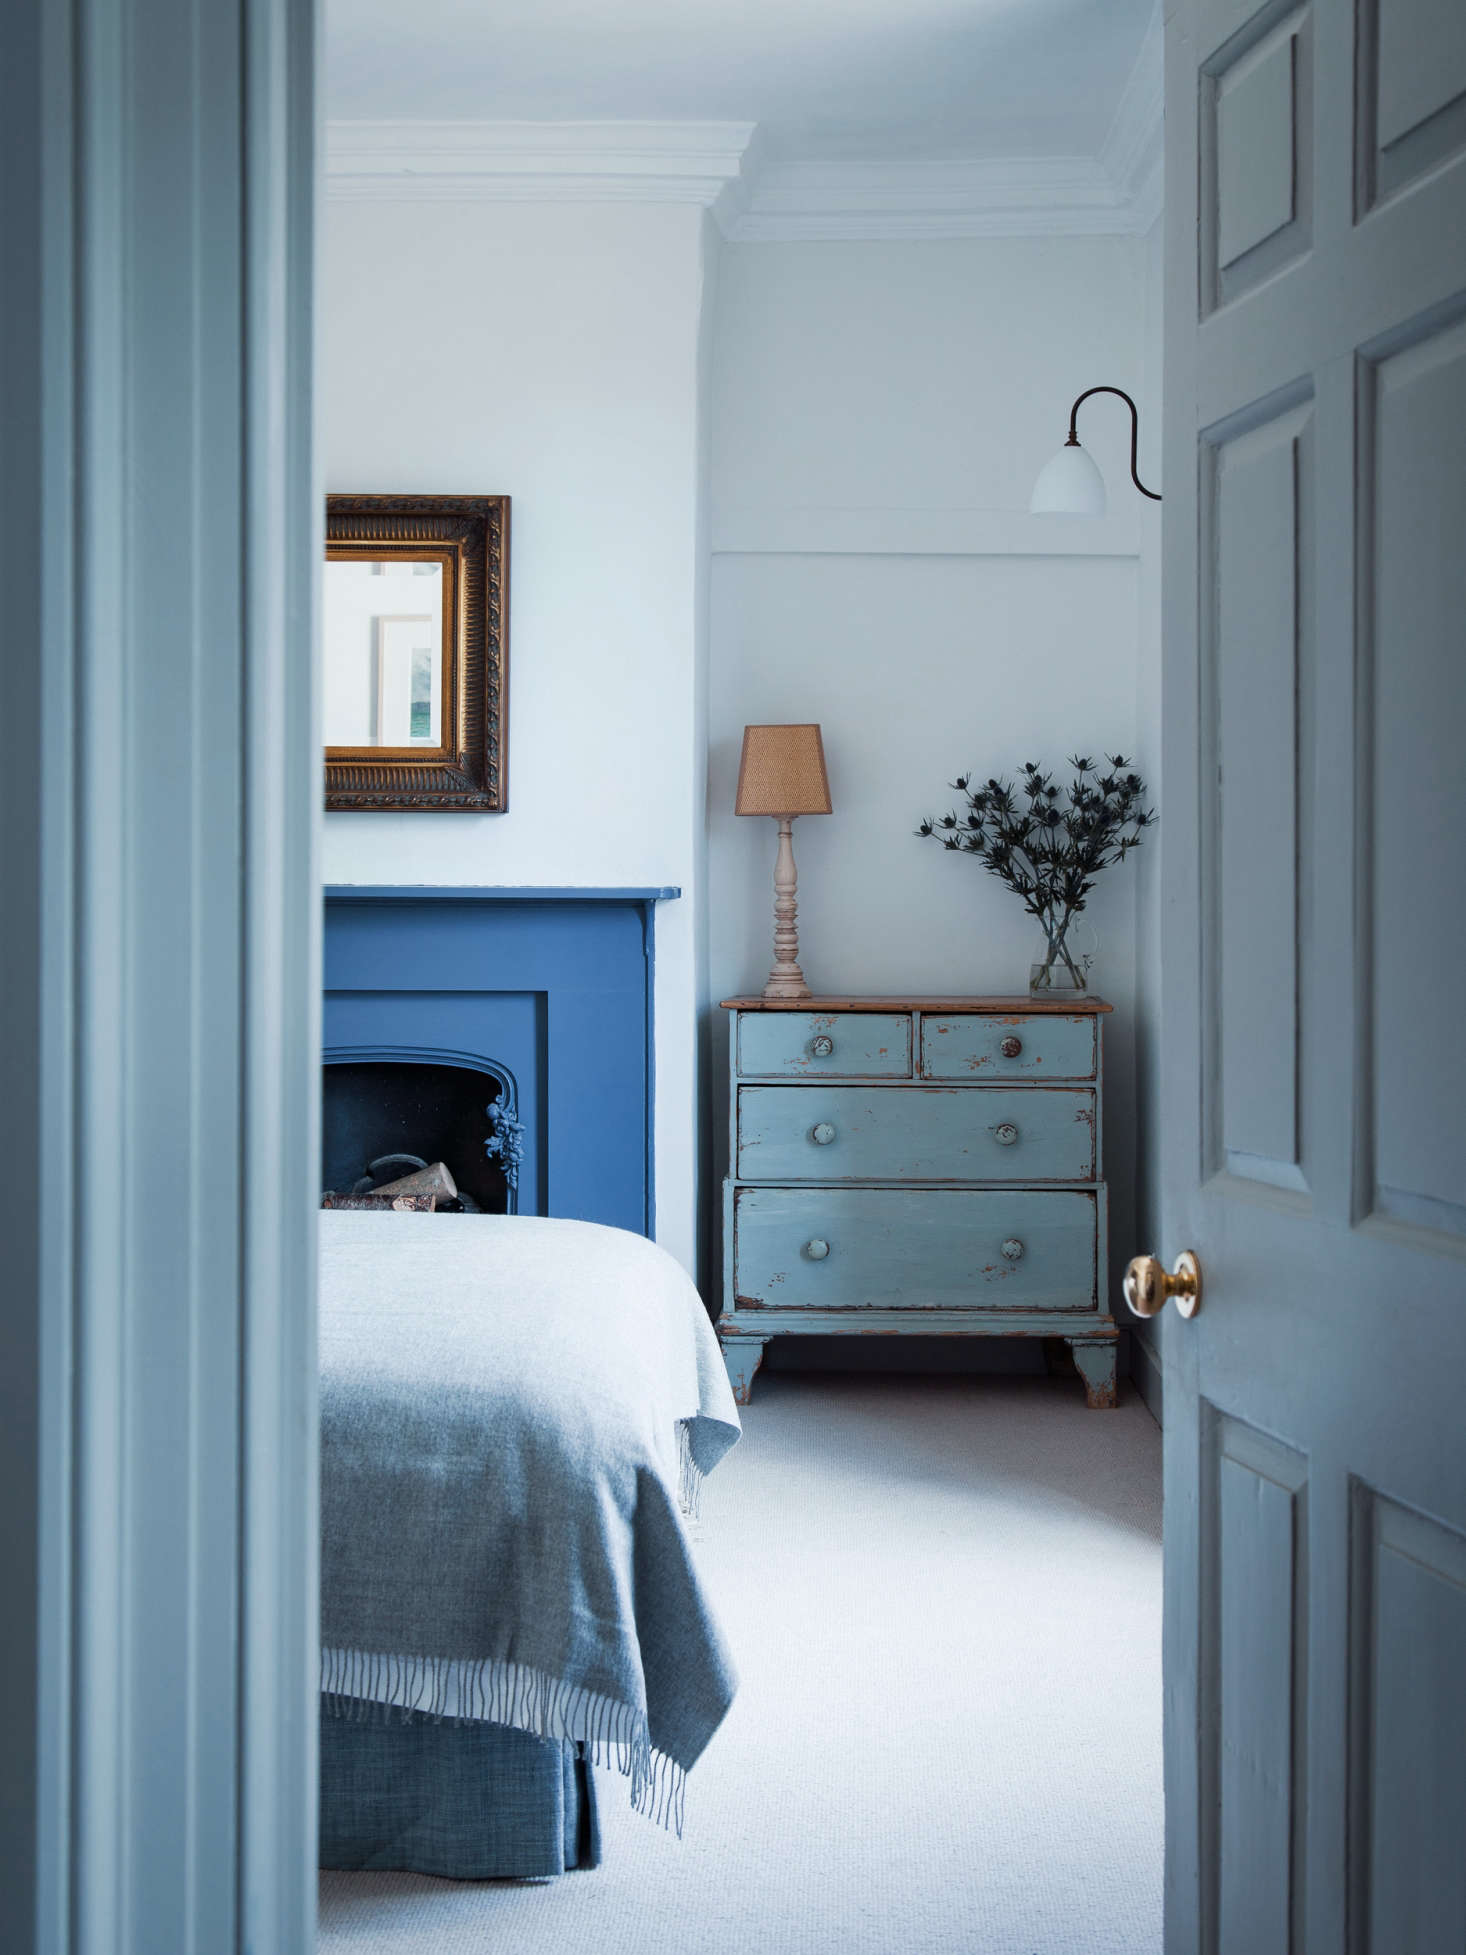 A flawless application of several shades of blue makes for a restful bedroom in this Dorset House by Mark Lewis. See: Blue Period: An English Manor House Channels Picasso. Photo by Rory Gardiner.